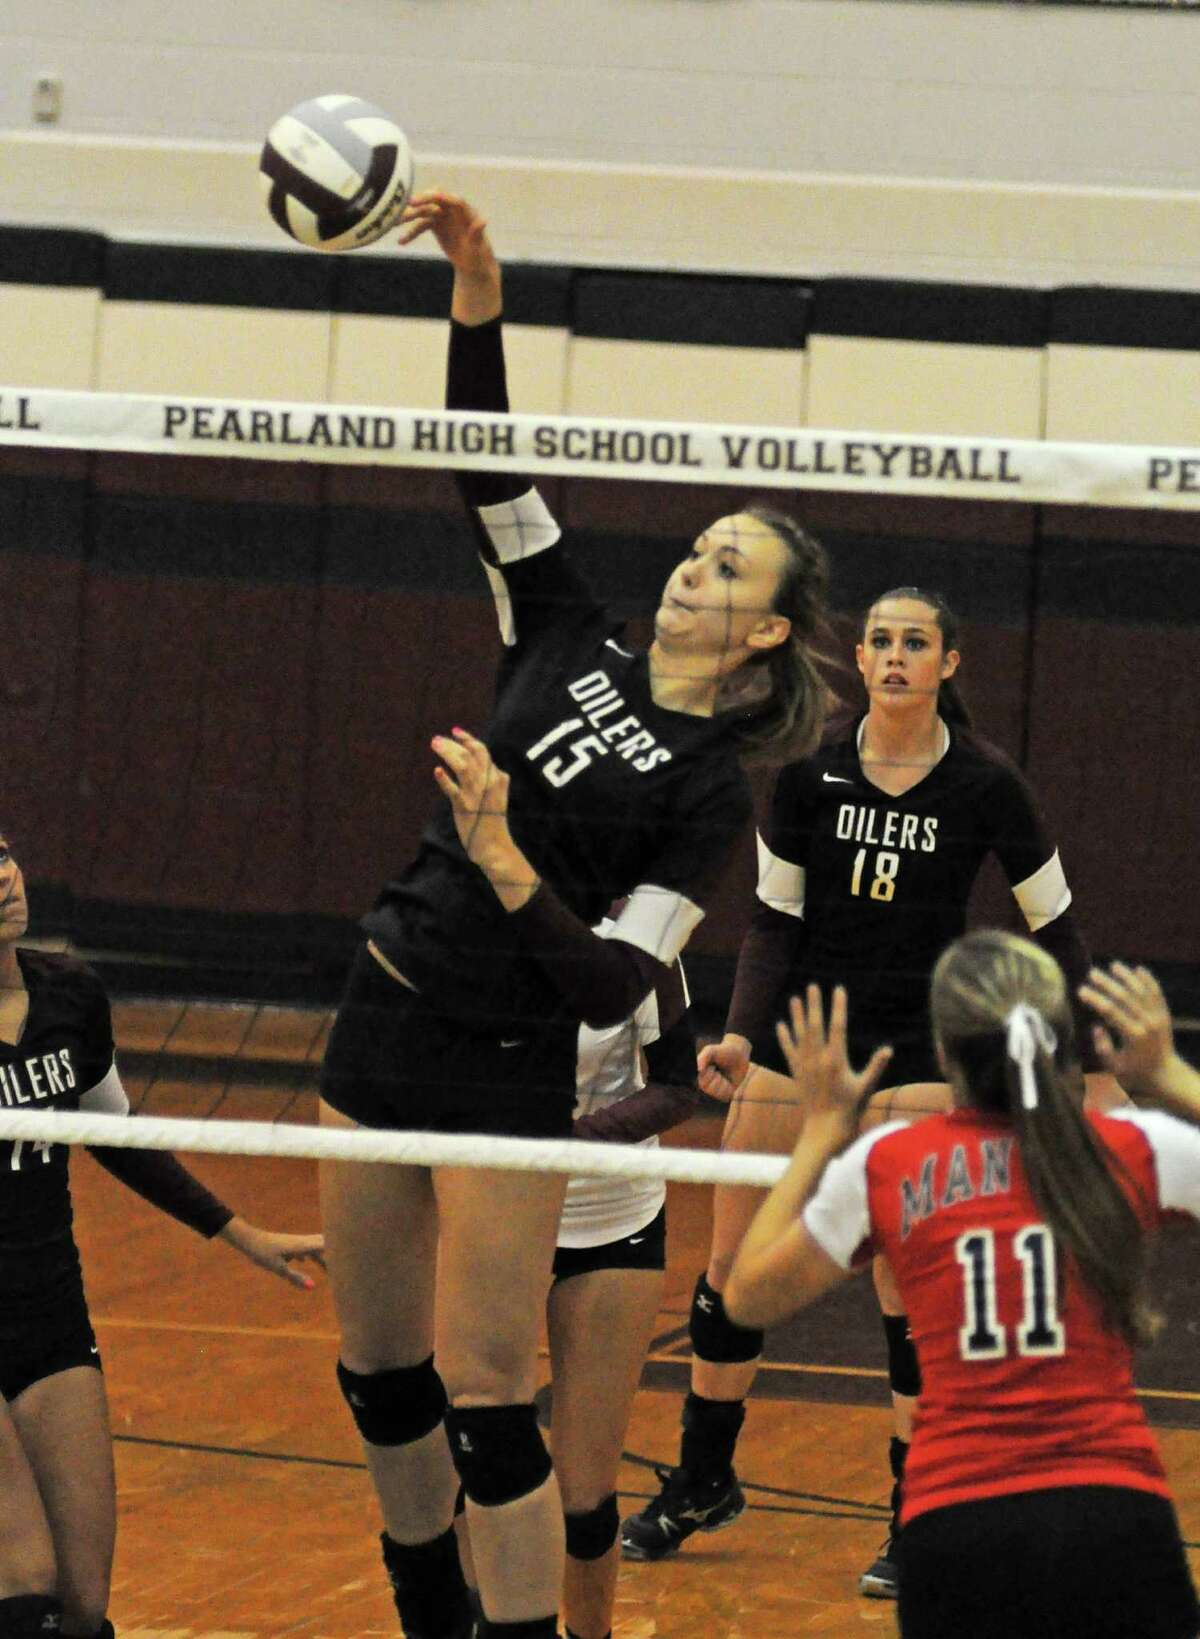 Pearland's Cassidy Nussman (15) is among the top talent on area teams set to compete in the Texas Volleyball Invitational in August.